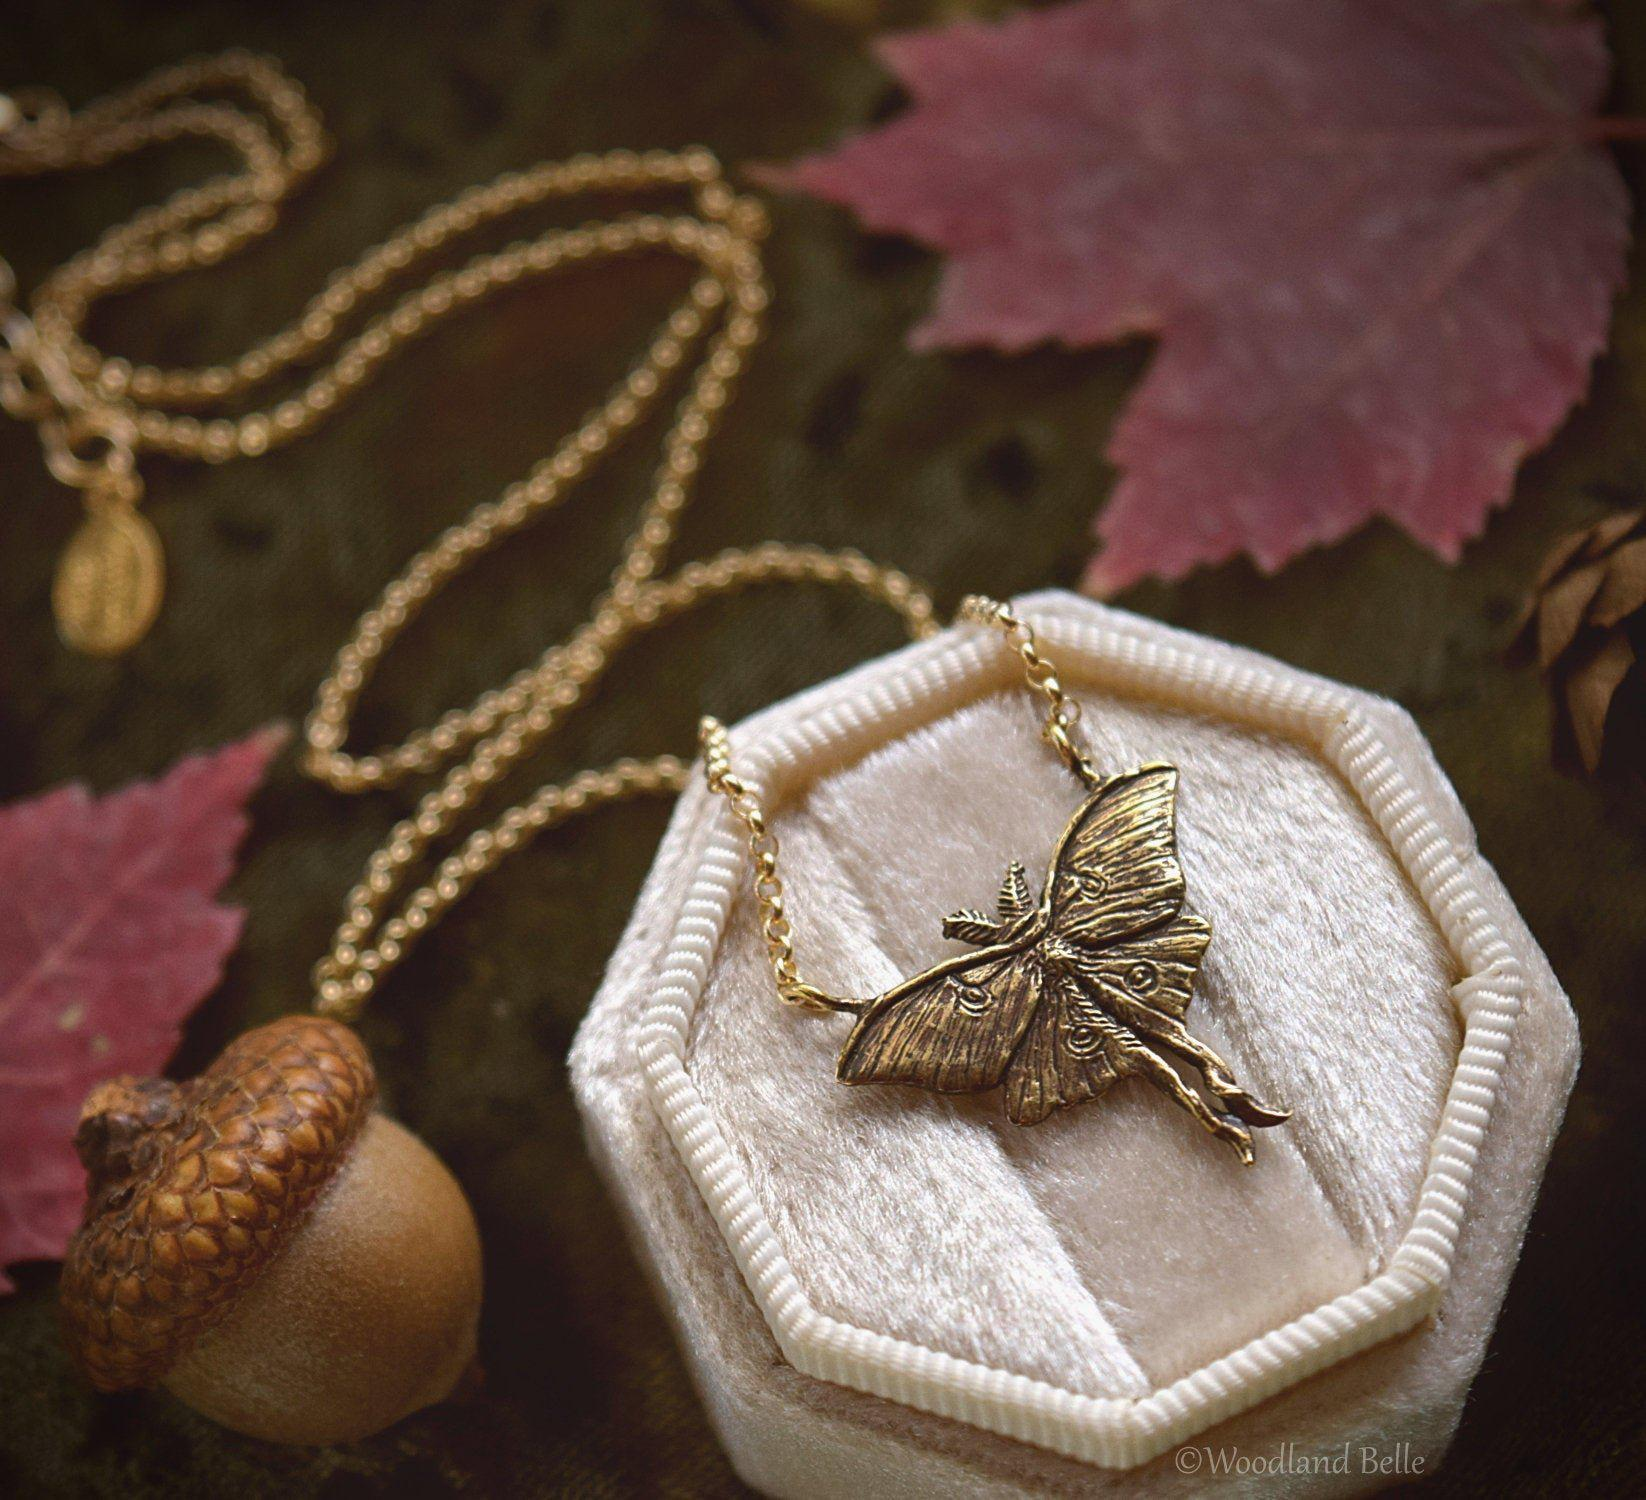 Luna Moth Necklace - Gold Bronze Moon Moth Pendant - Small, Dainty Luna Moth Charm - Jewelry Gift for Moth Lover - by Woodland Belle